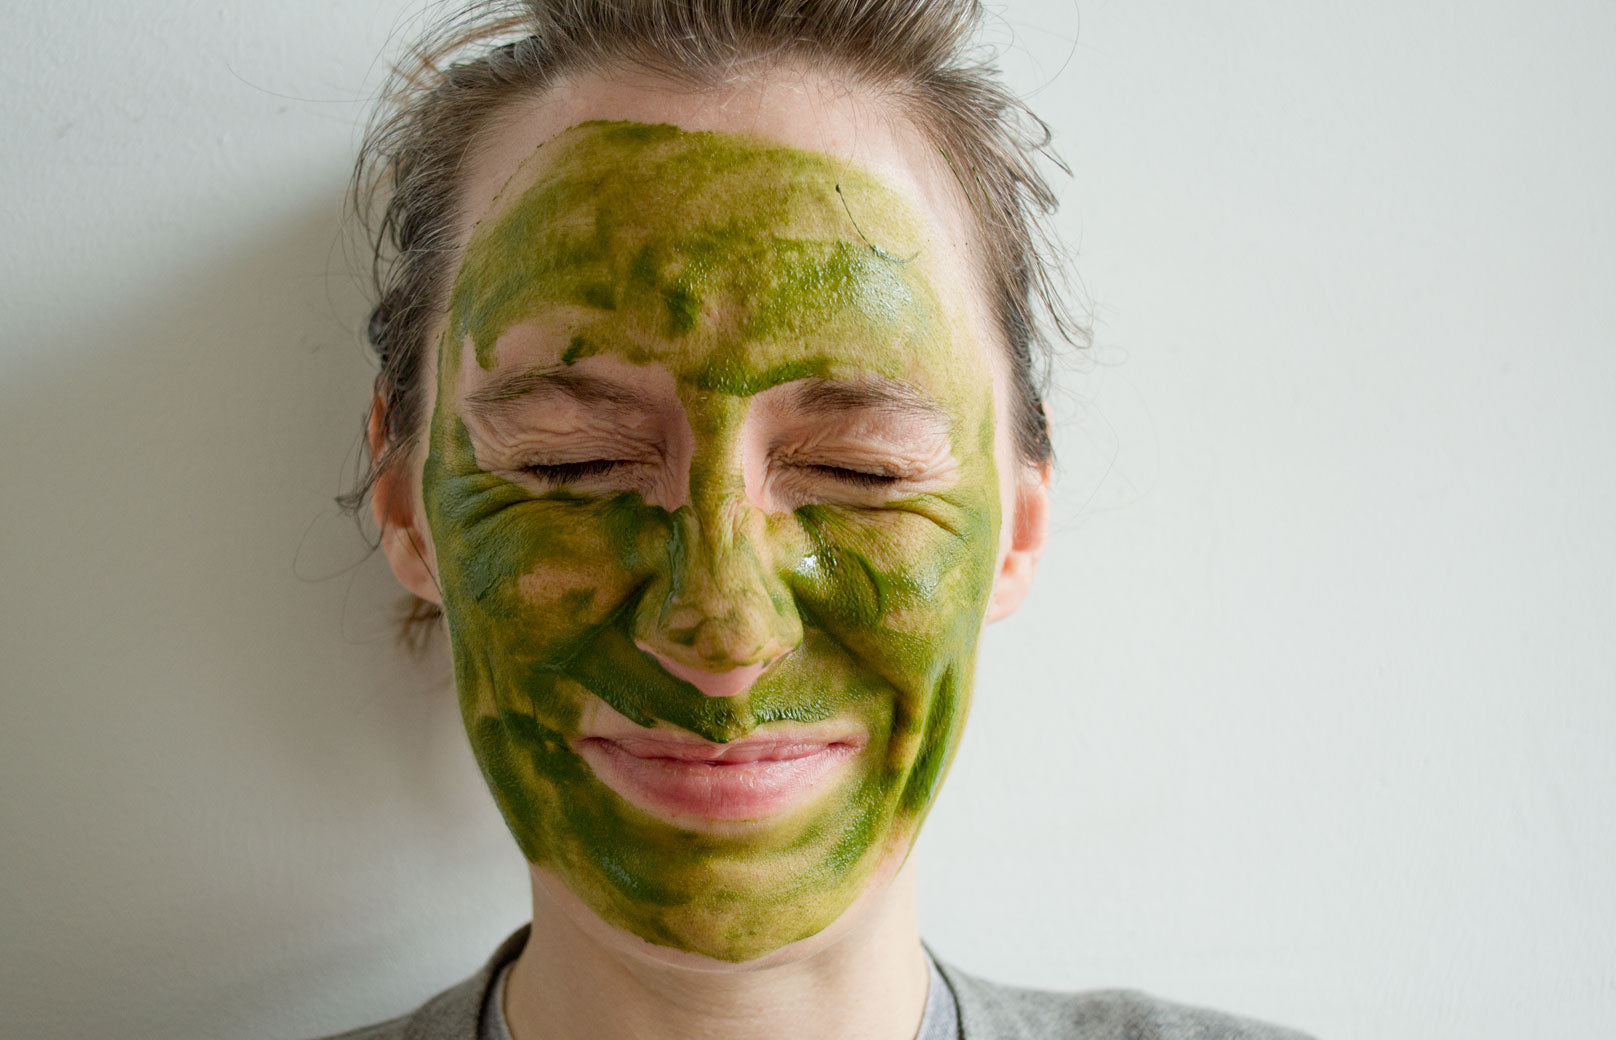 The very best matcha face mask you'll ever try